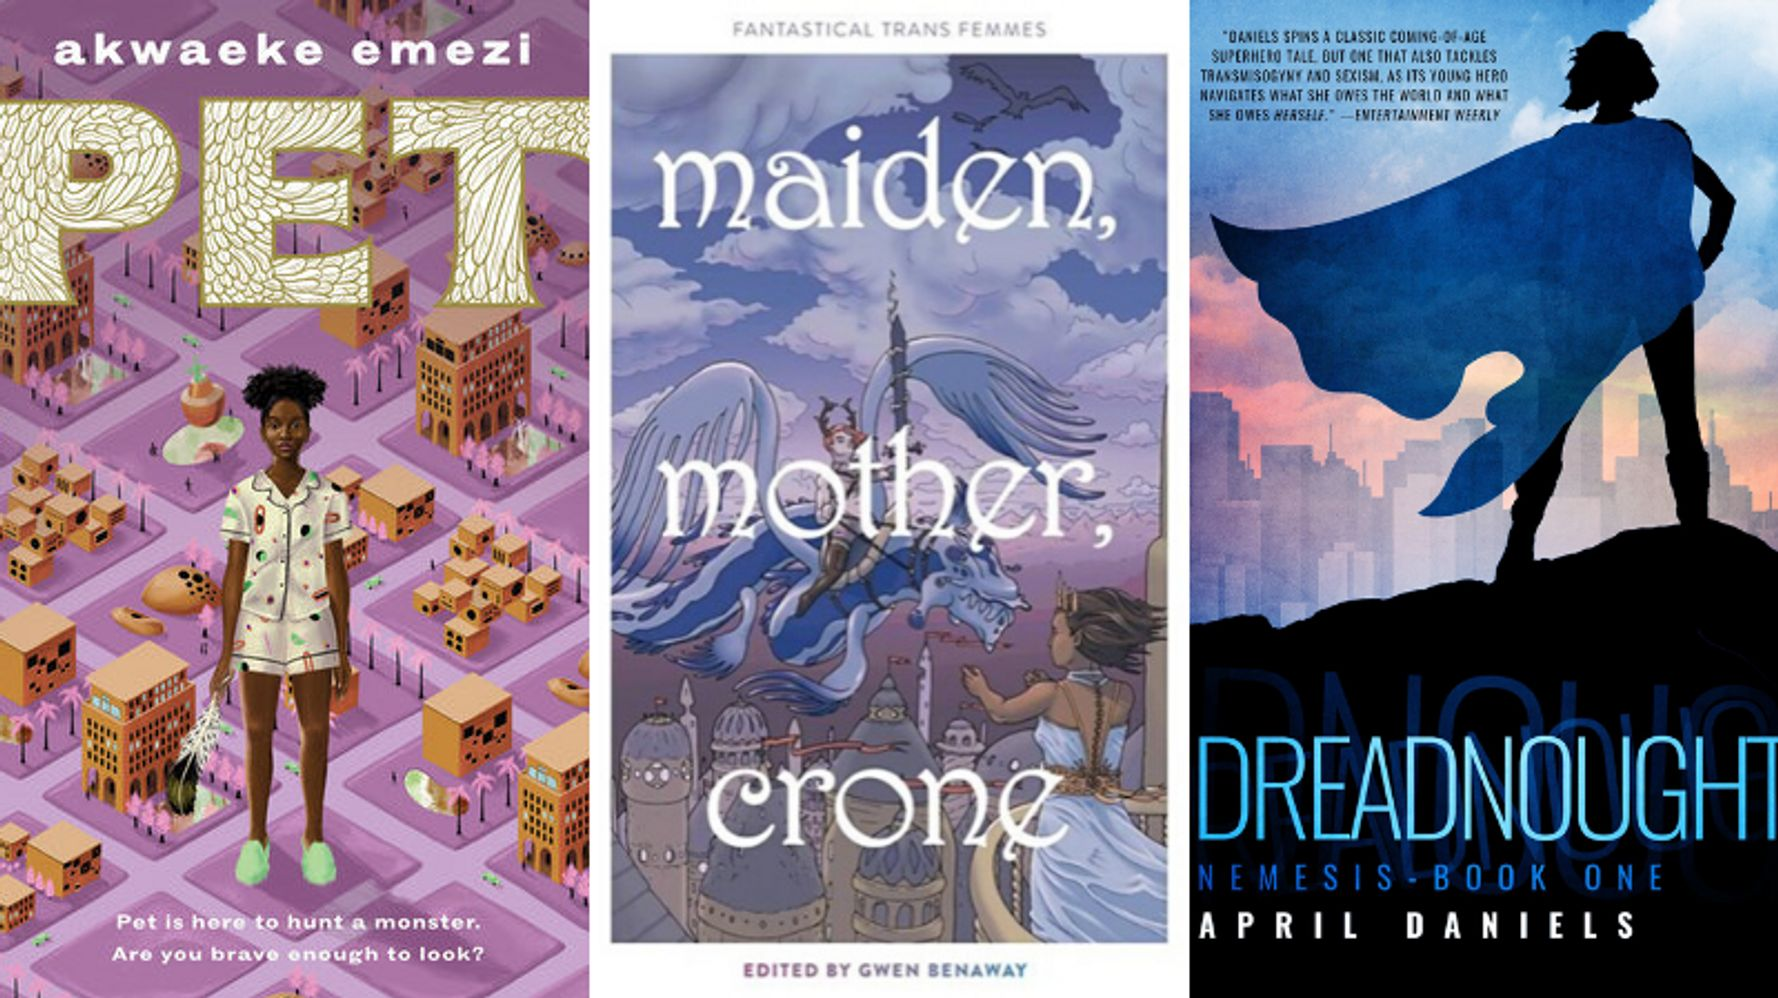 Fantasy And Sci-Fi Books For Trans Kids And Teens